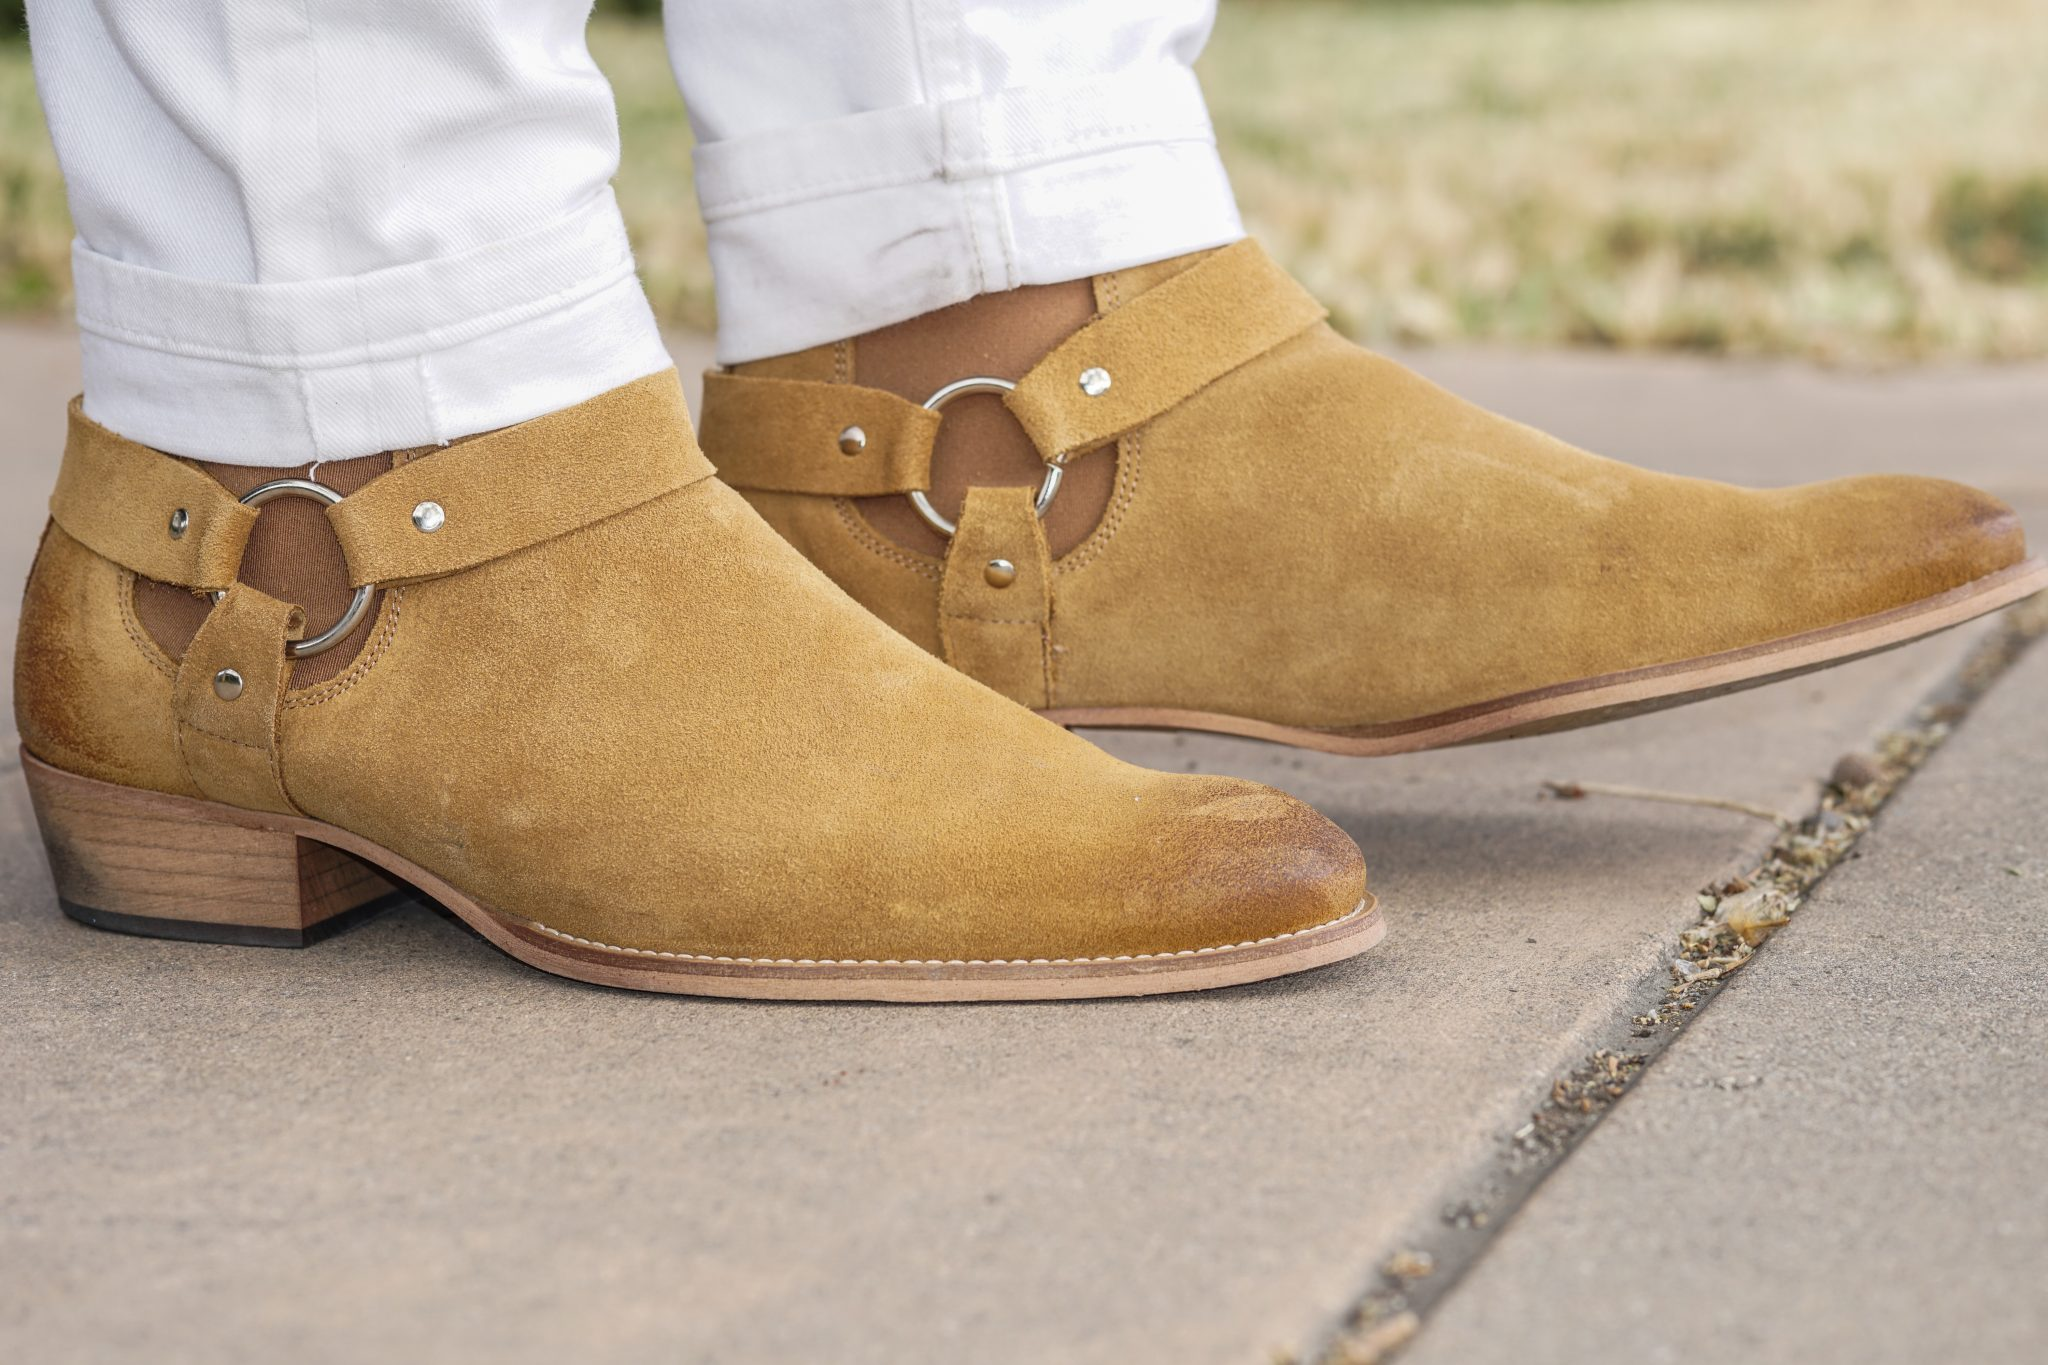 dapper advisor-springtime essentials-white denim jeans-suede chelsea boots-1